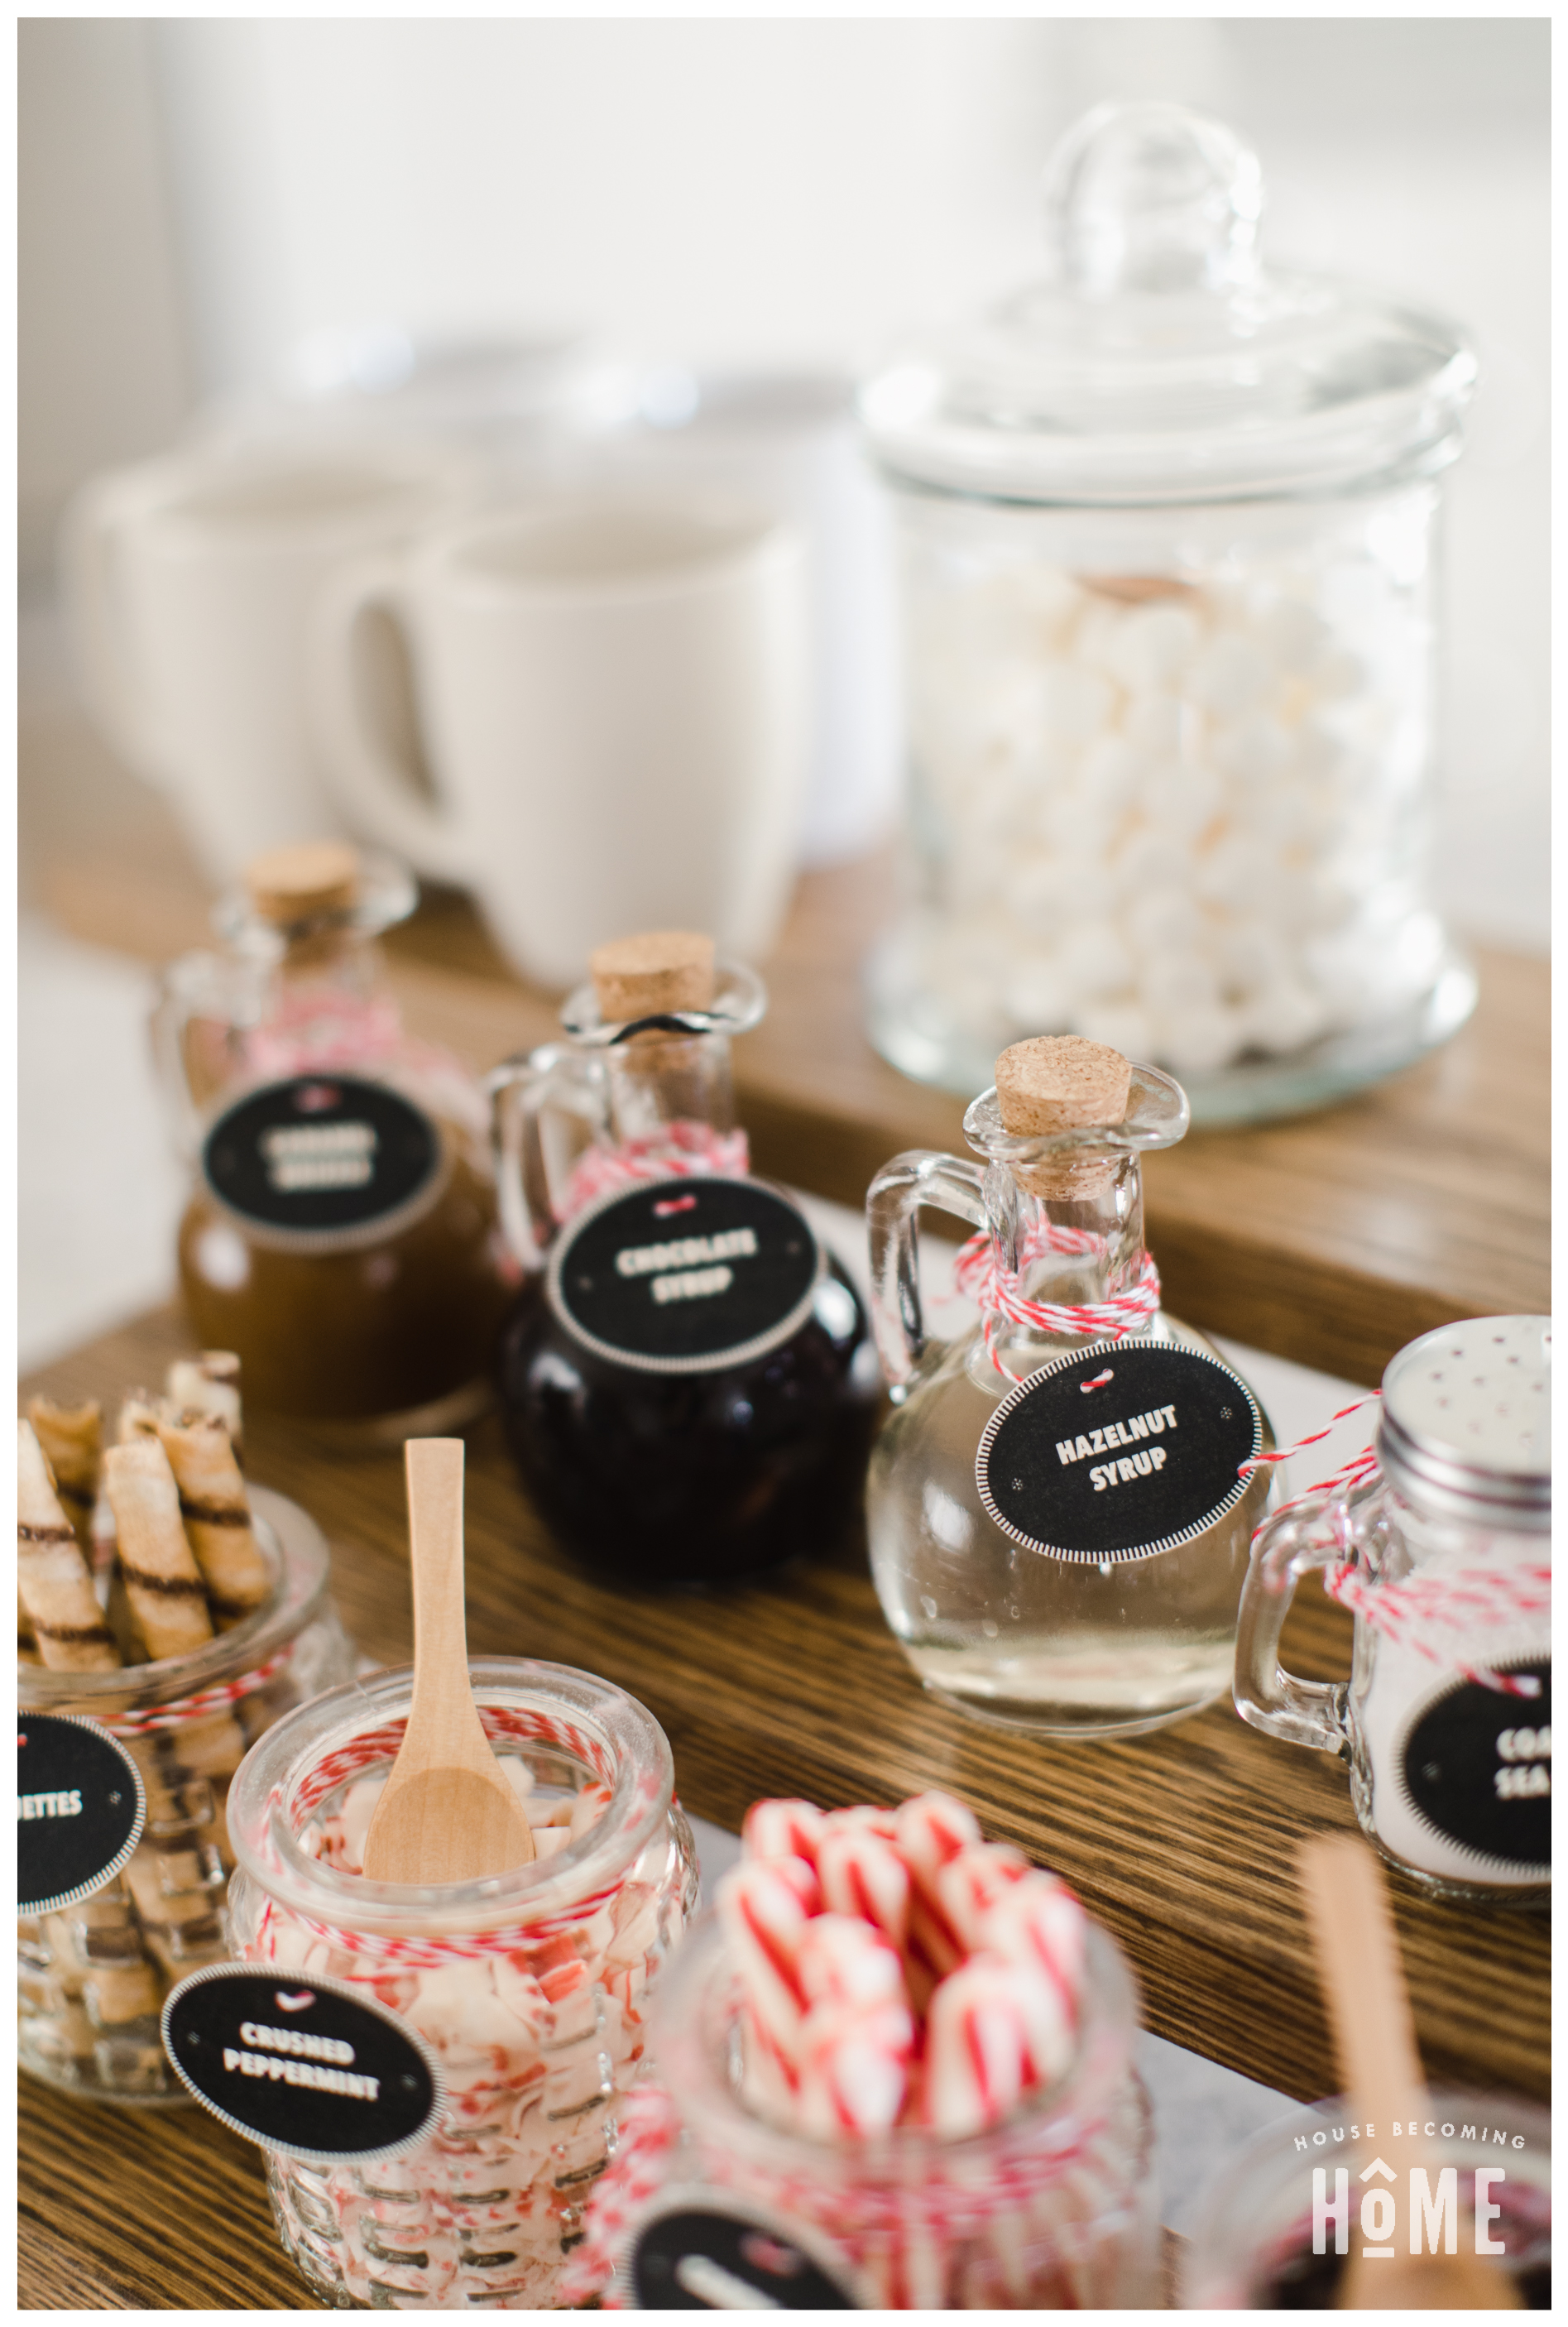 Hot Cocoa Bar Ideas for Items to Include : chocolate syrup, caramel drizzle, hazelnut syrup, mini chocolate chips, crushed toffee bits